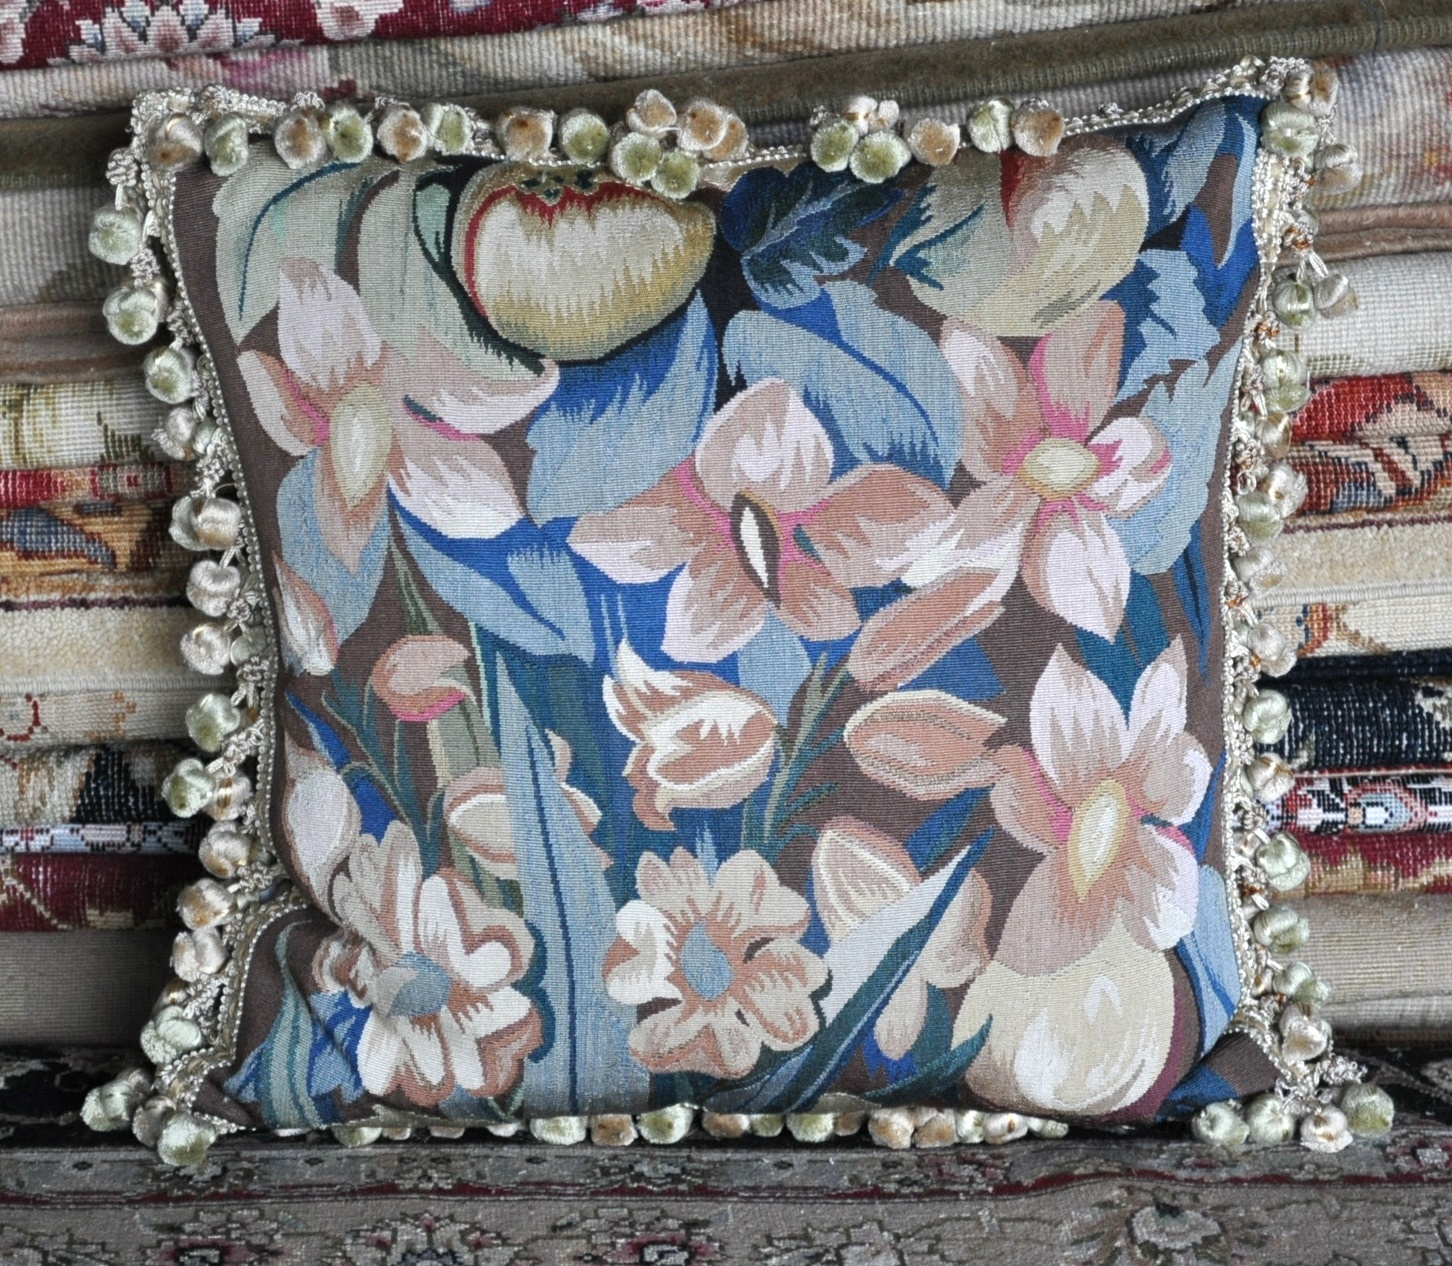 18″ x 18″ Handmade French Gobelins Tapestry Weave Silk Aubusson Cushion Cover Pillow Case 12980042